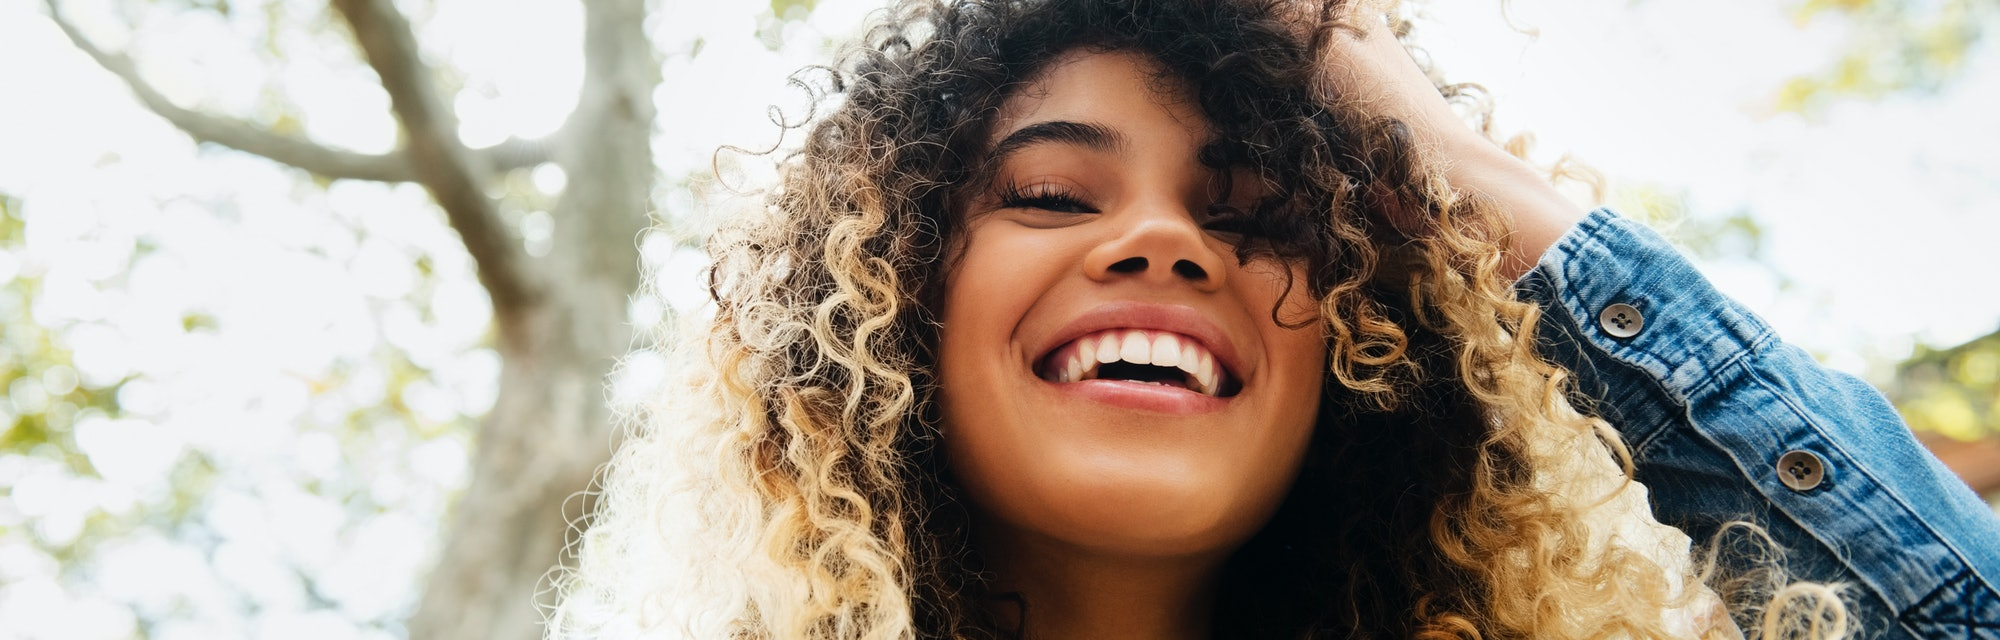 https://www.gettyimages.com/detail/photo/smiling-mixed-race-woman-with-hand-in-hair-royalty-free-image/700712243?adppopup=true&uiloc=thumbnail_similar_images_adp